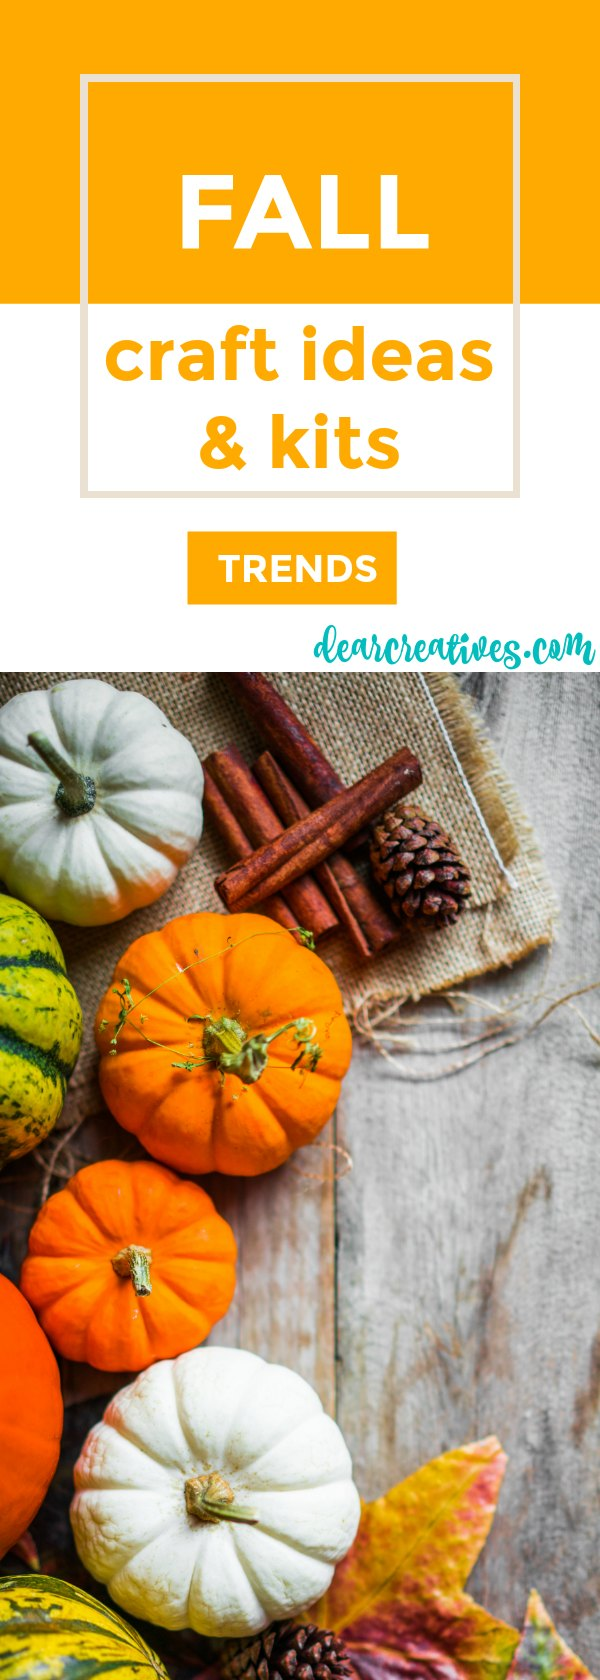 Fall craft ideas and craft kits perfect for making -crafting your own home decor accents. Bring fall indoors with these crafts. DearCreatives.com